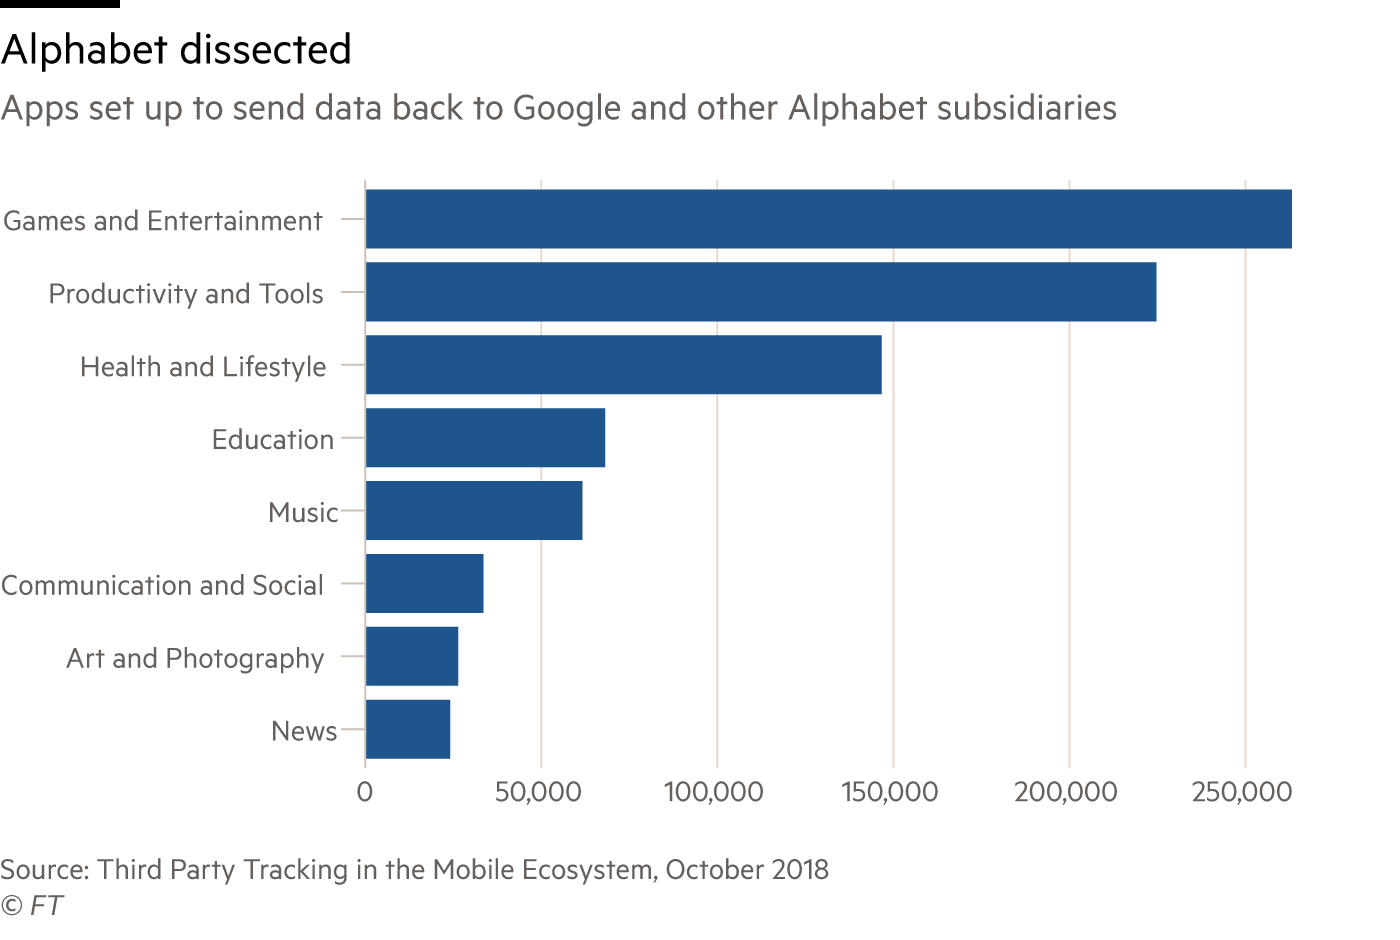 Bar chart showing apps set up to send data back to Google